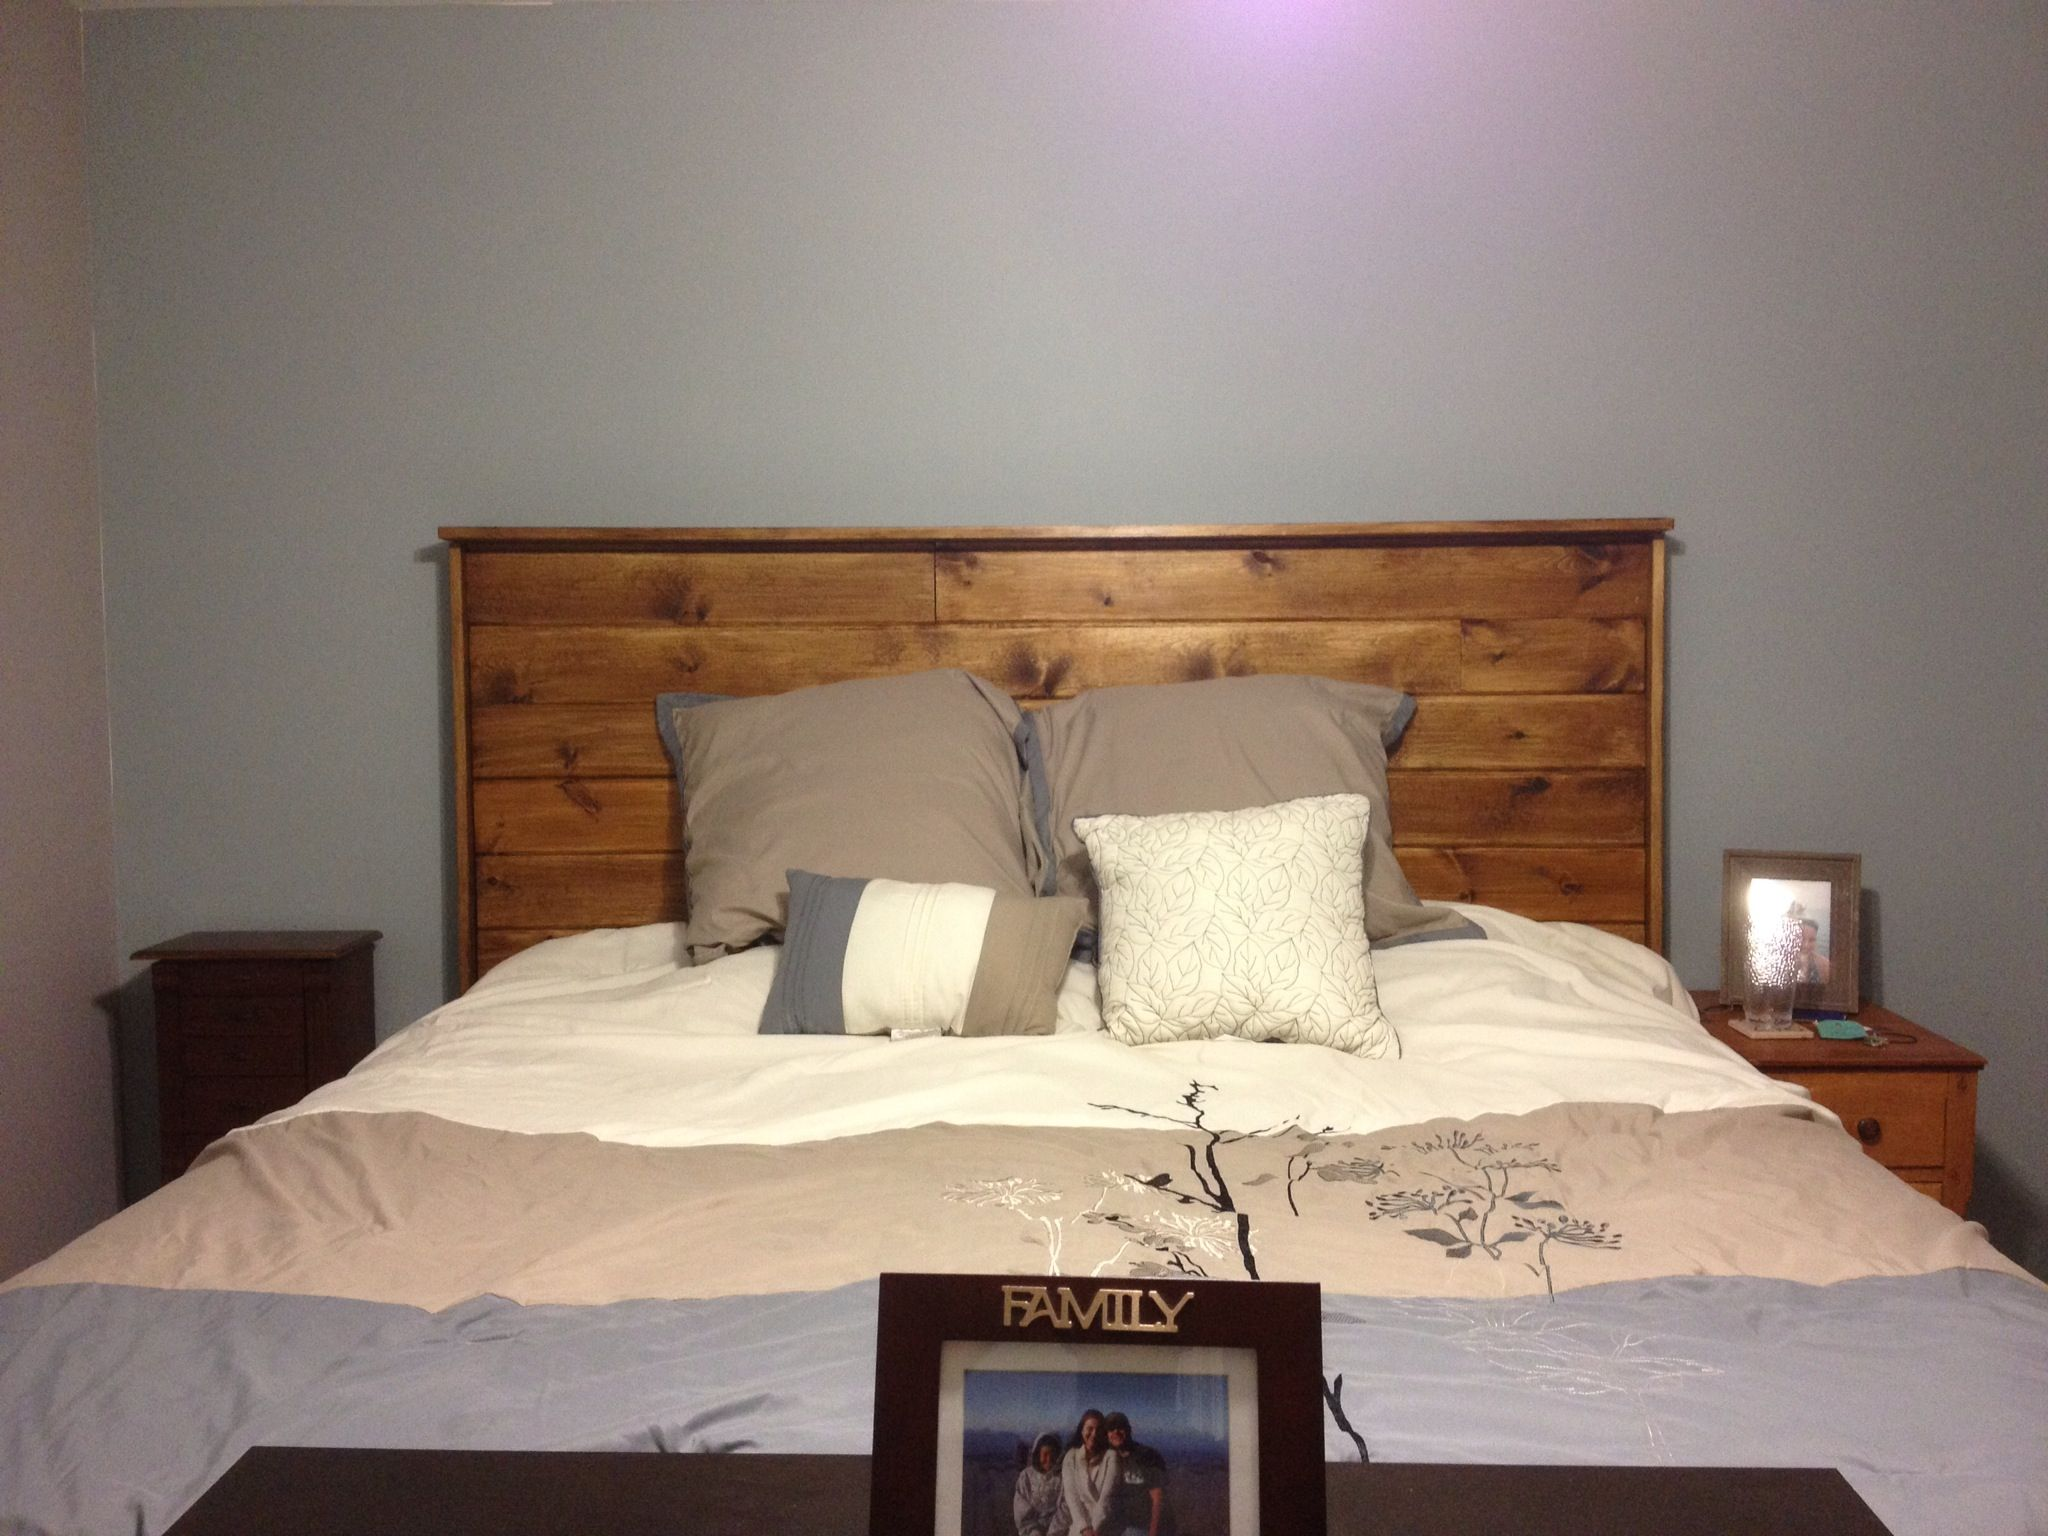 Homemade headboard for king size bed home decor for Queen headboard ideas